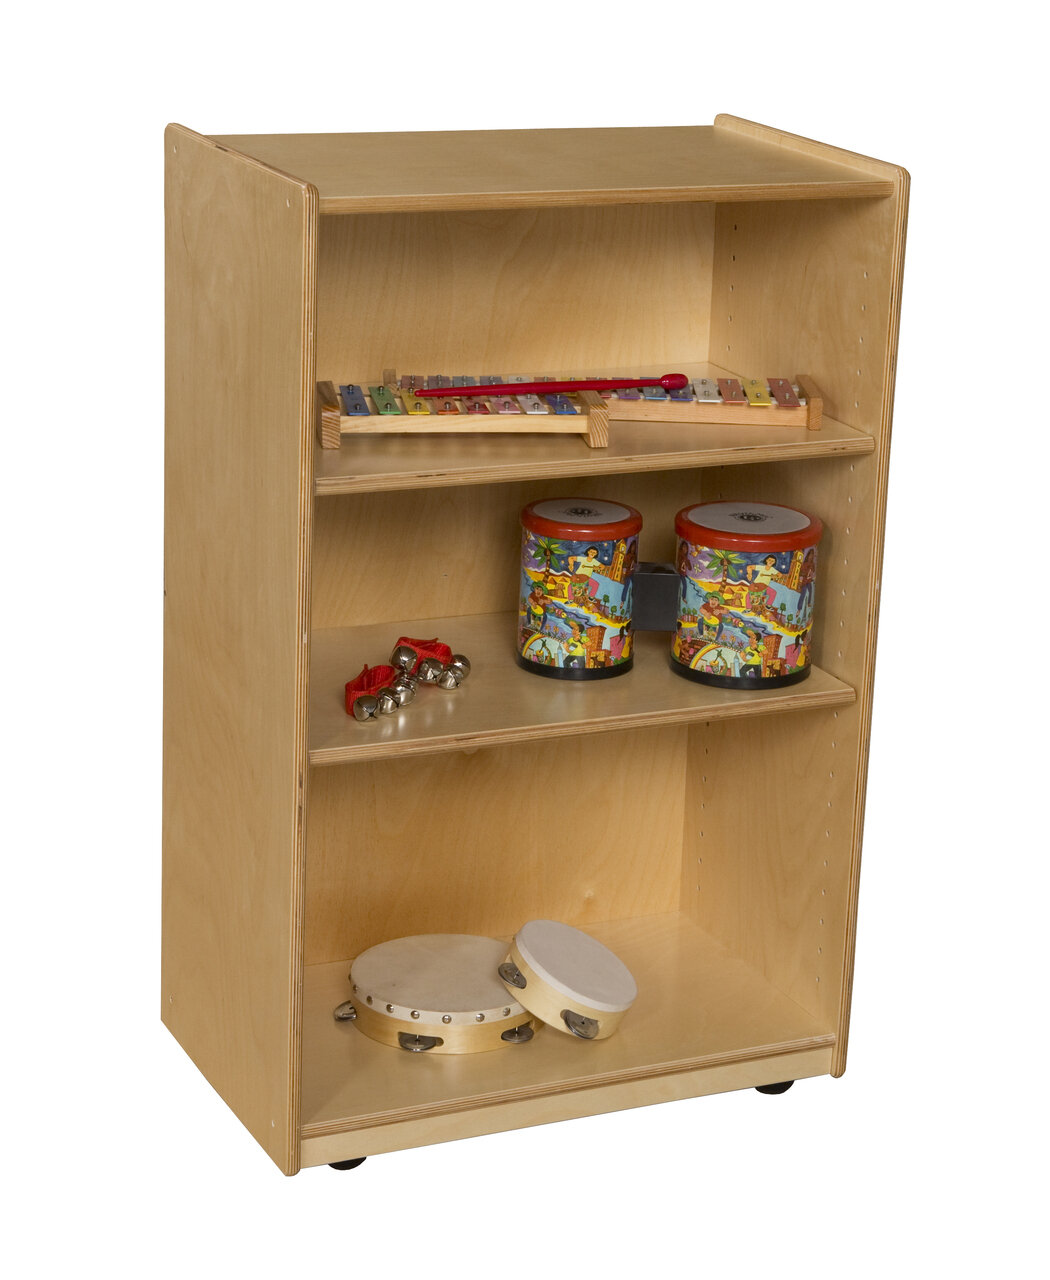 Very Impressive portraiture of Wood Designs Storage with Adjustable Shelves eBay with #6D4224 color and 1050x1280 pixels